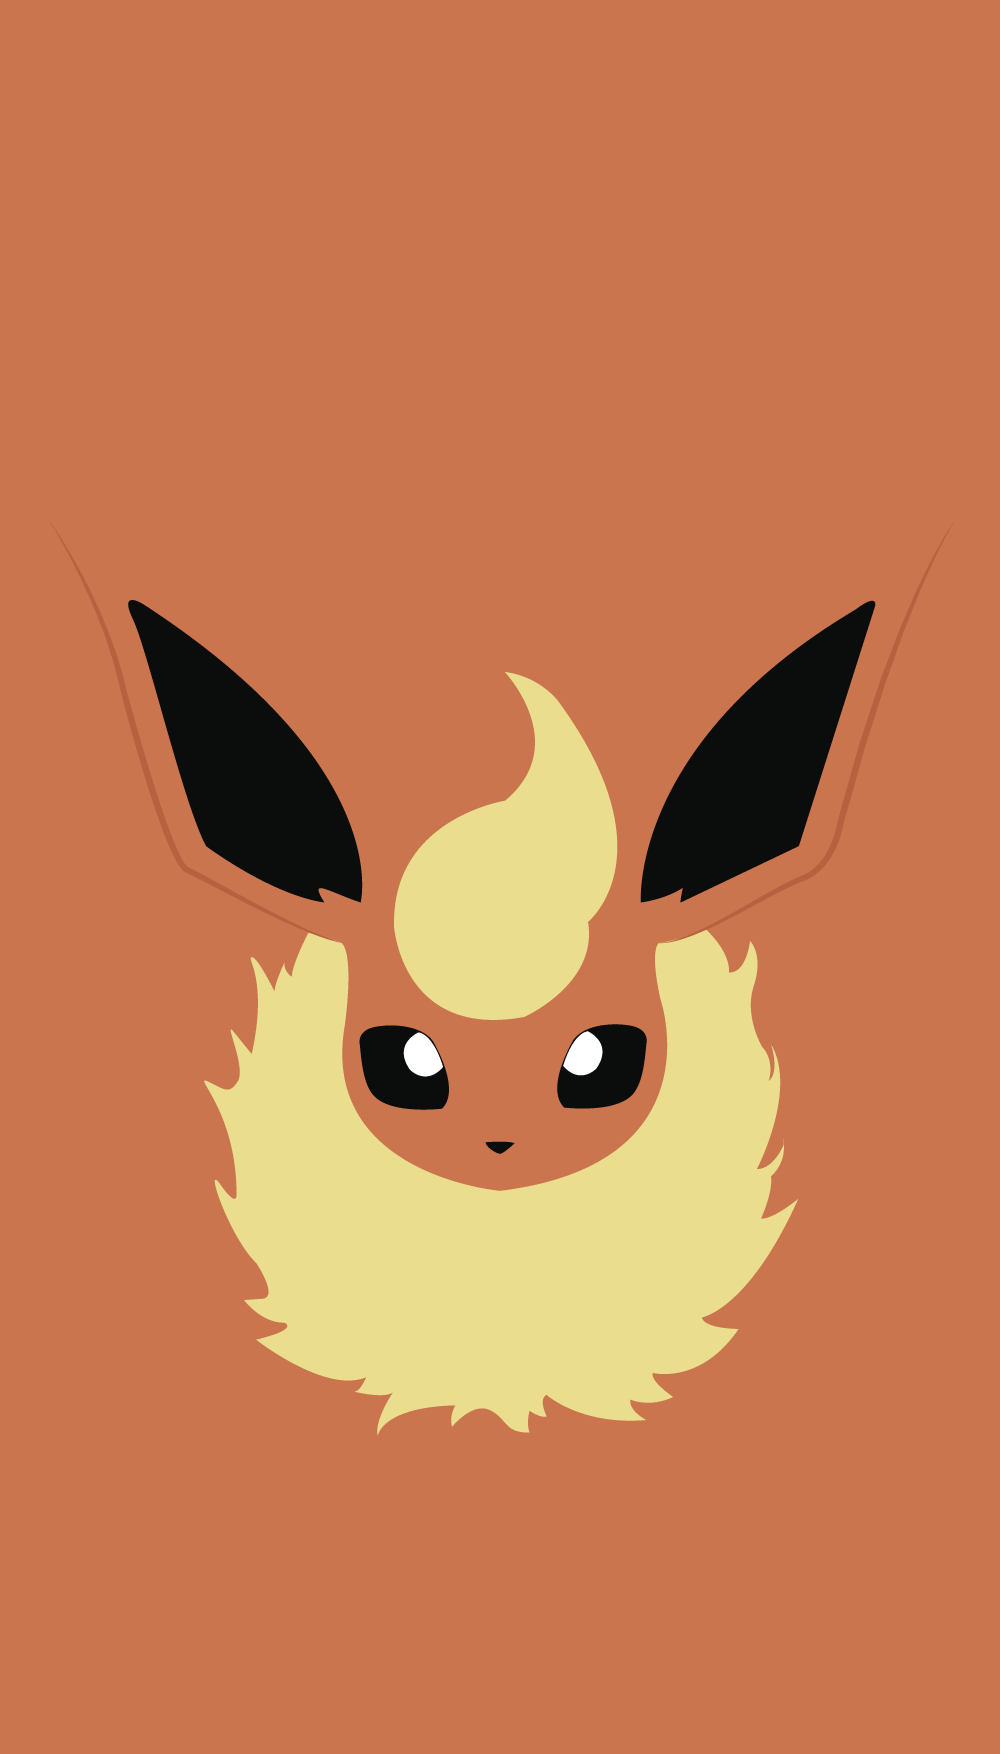 Pokemon Wallpaper Flareon | Pokemon | Pinterest | Pokémon …